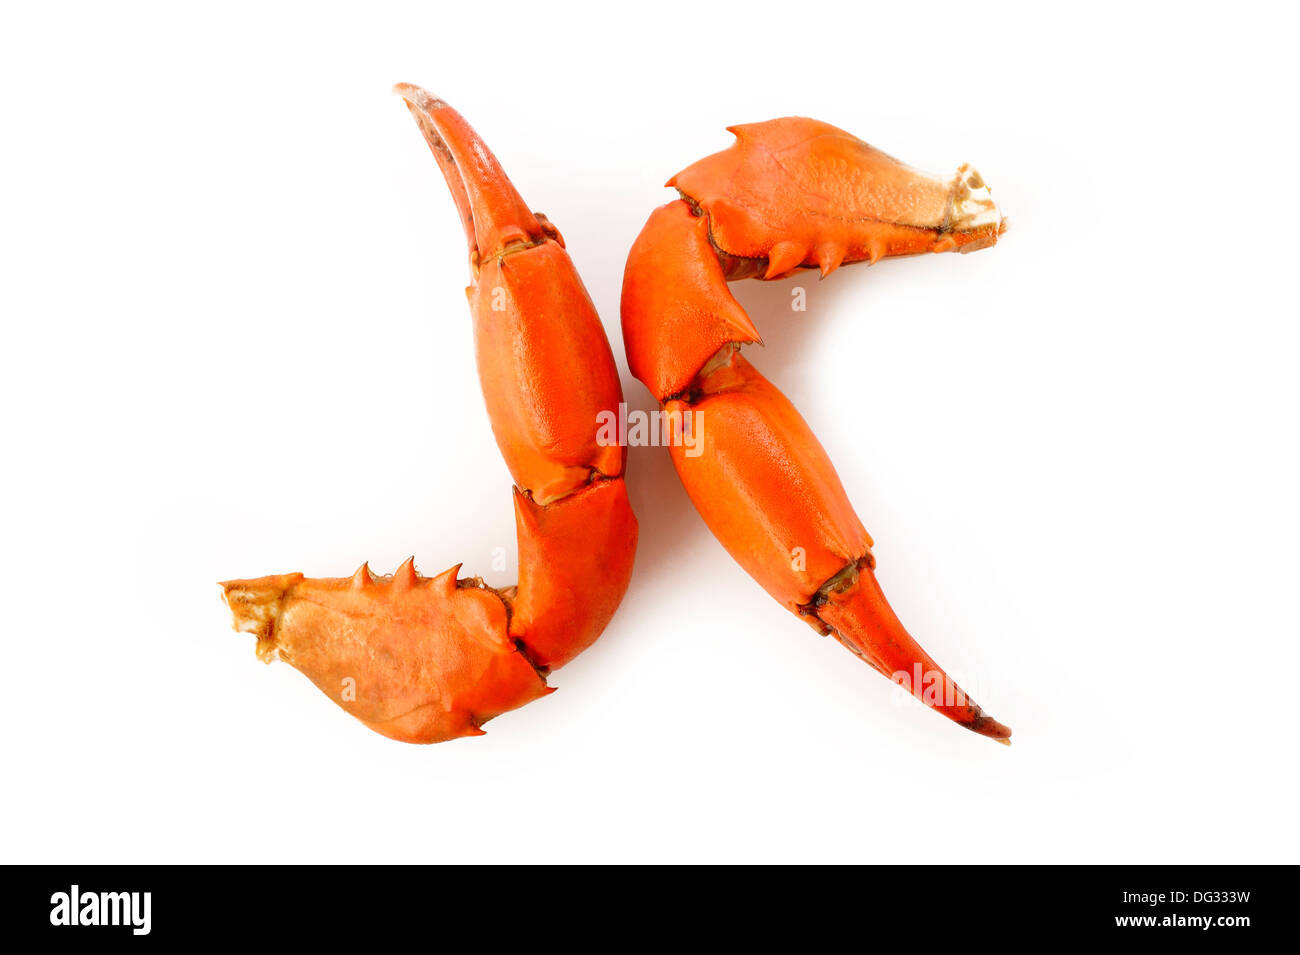 Boiled crab claw on white background - Stock Image